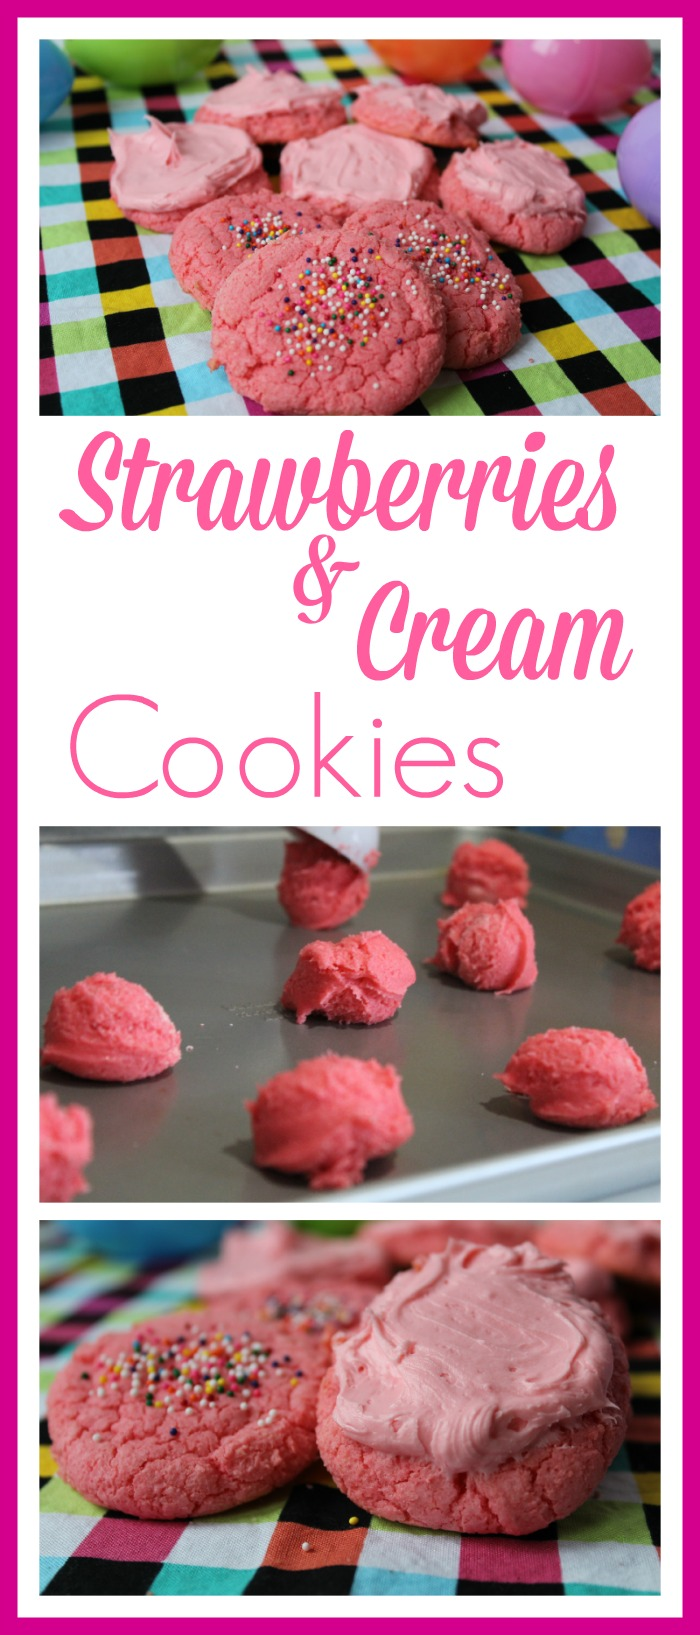 strawberries and cream cookies 1